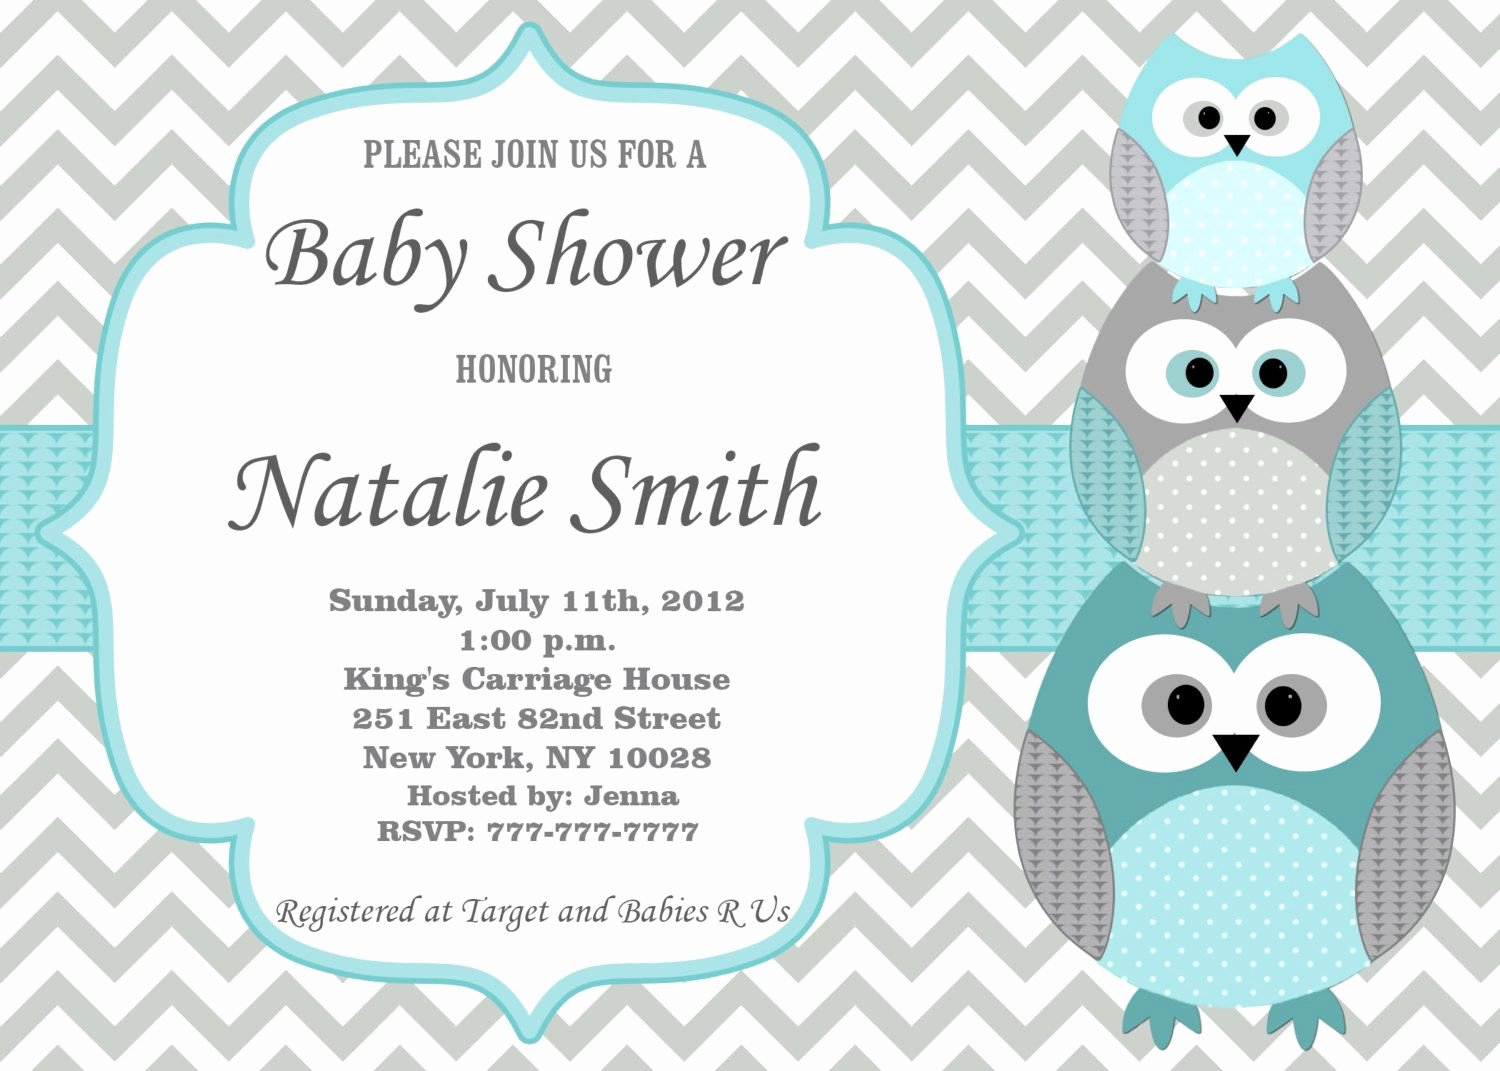 Baby Shower Invitation Baby Shower Invitation Templates